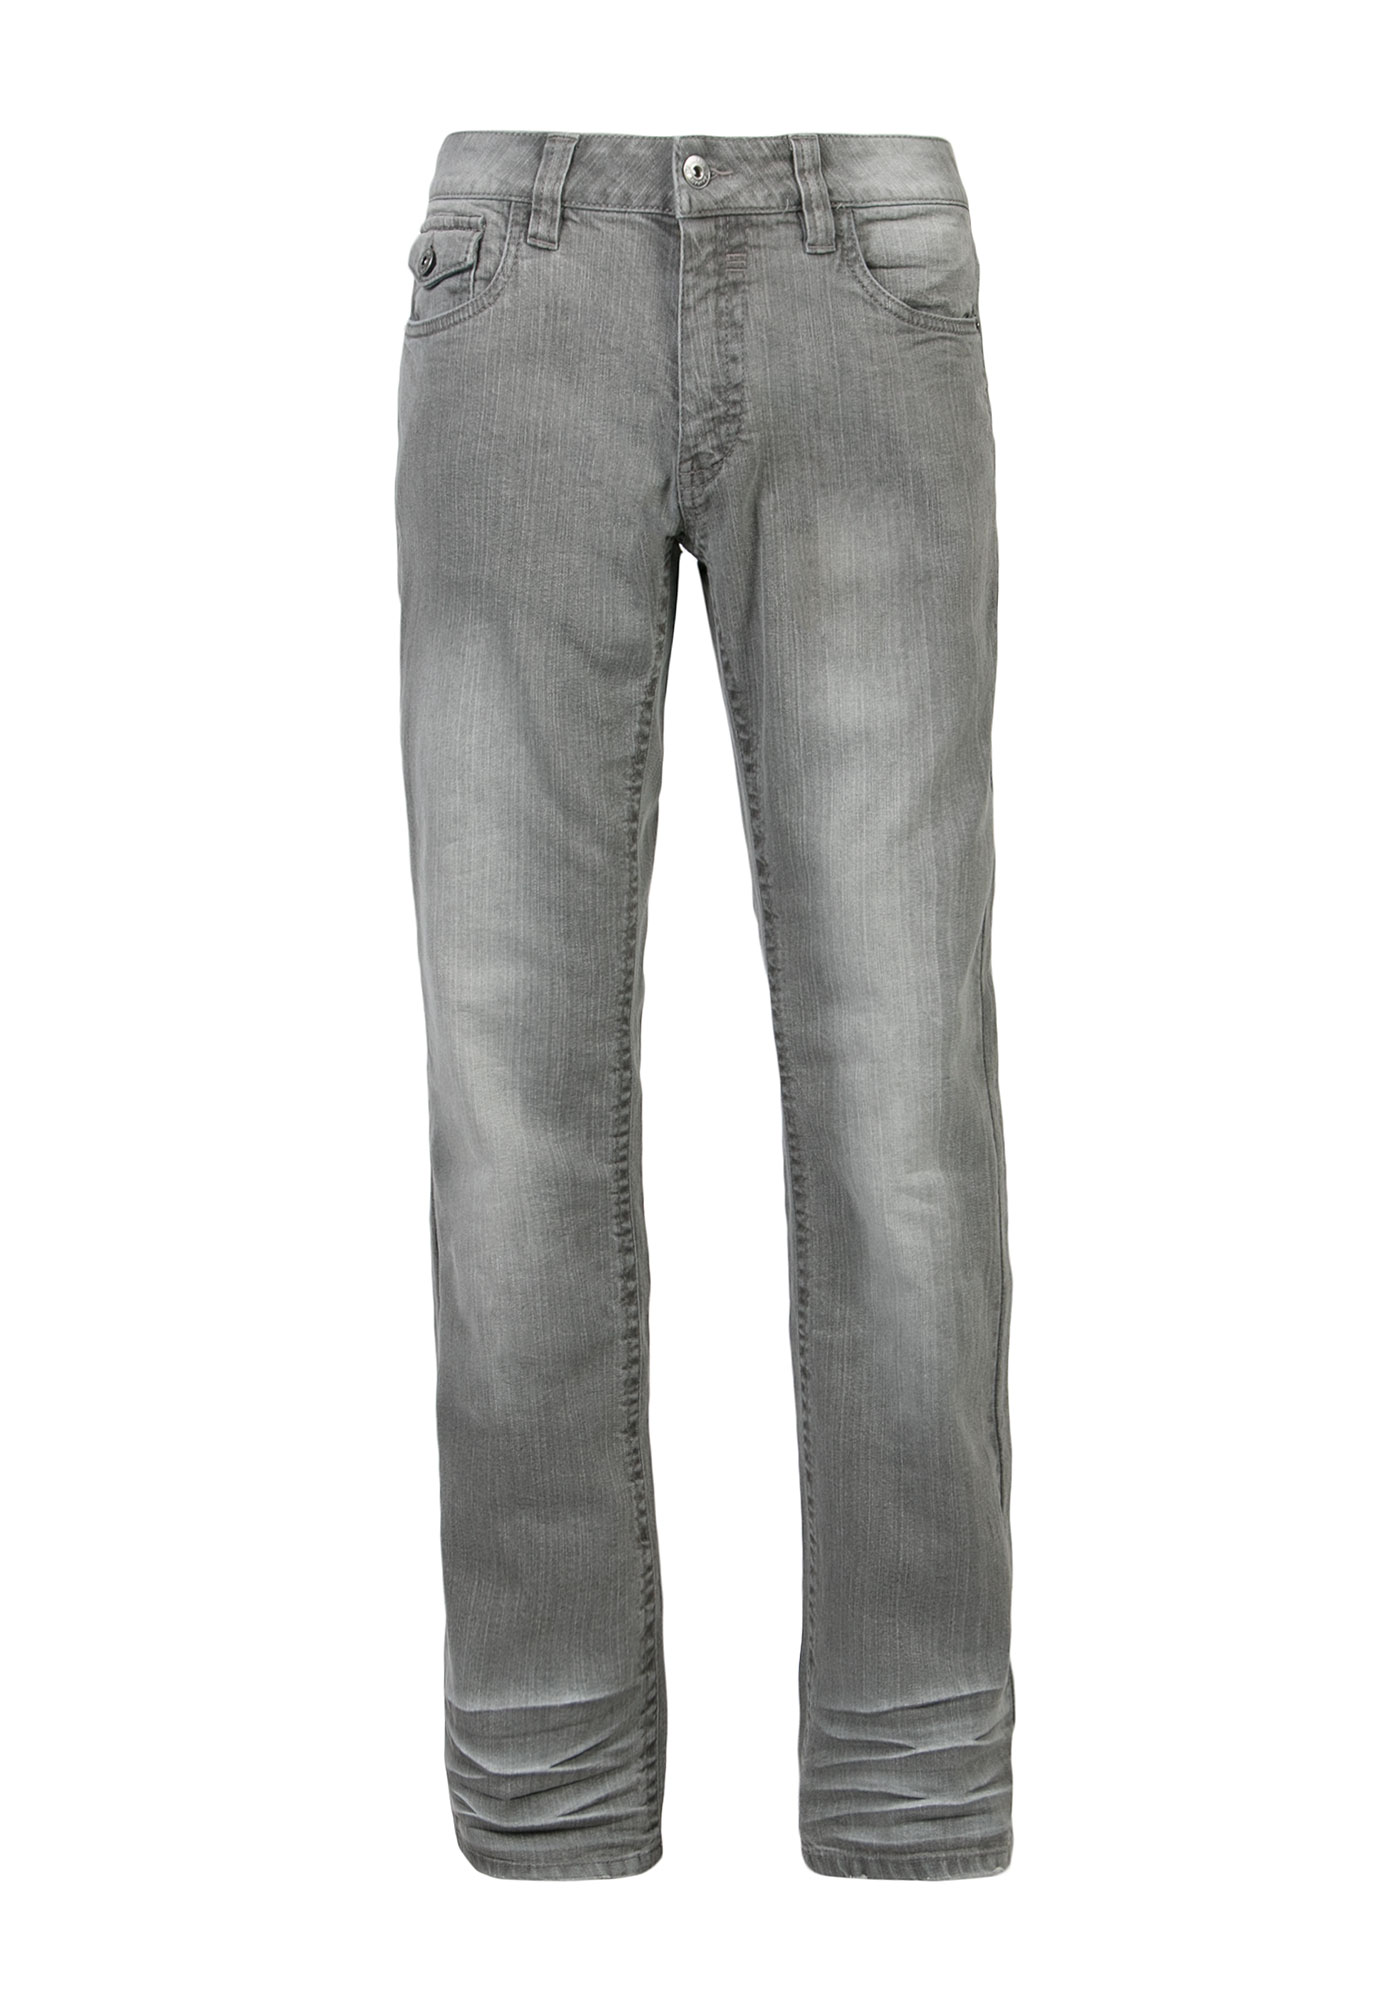 Men's Bootcut Jeans, GREY, hi-res